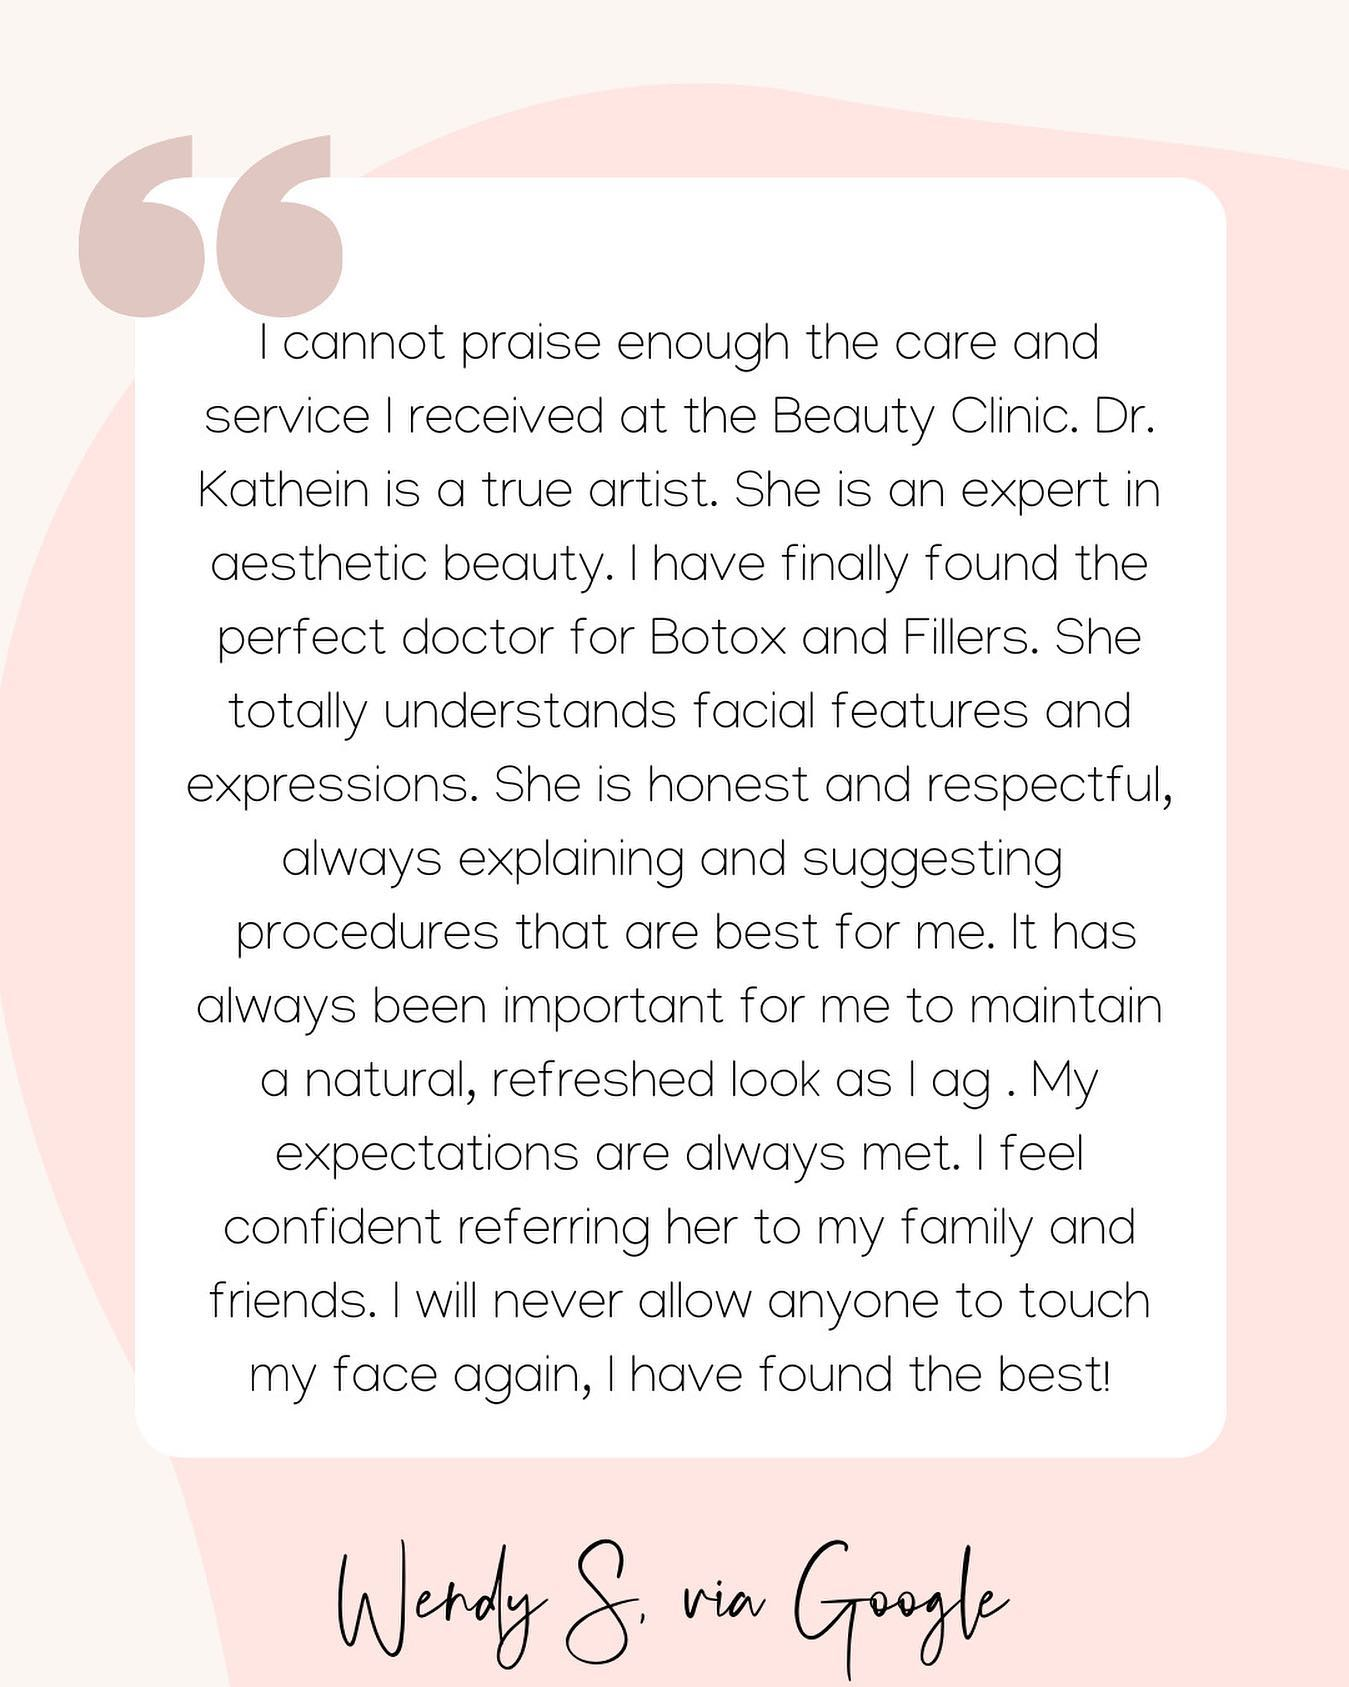 I cannot praise enough the care and service I received at the Beauty Clinic.